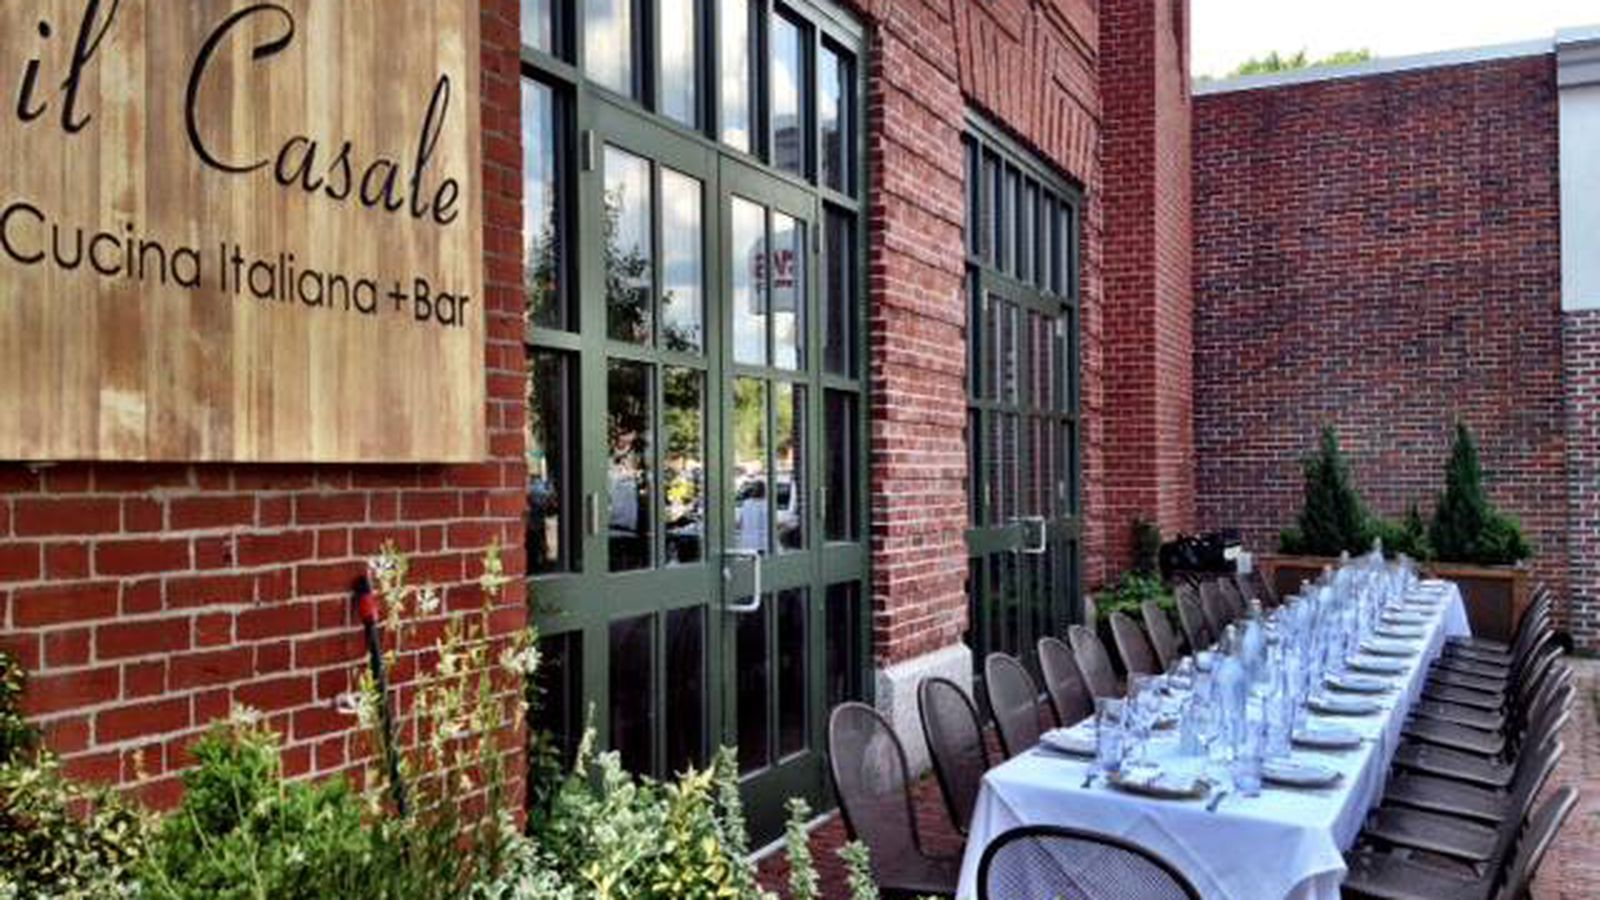 Cucina Restaurant Belmont A New Il Casale Opens In Lexington This Spring Eater Boston